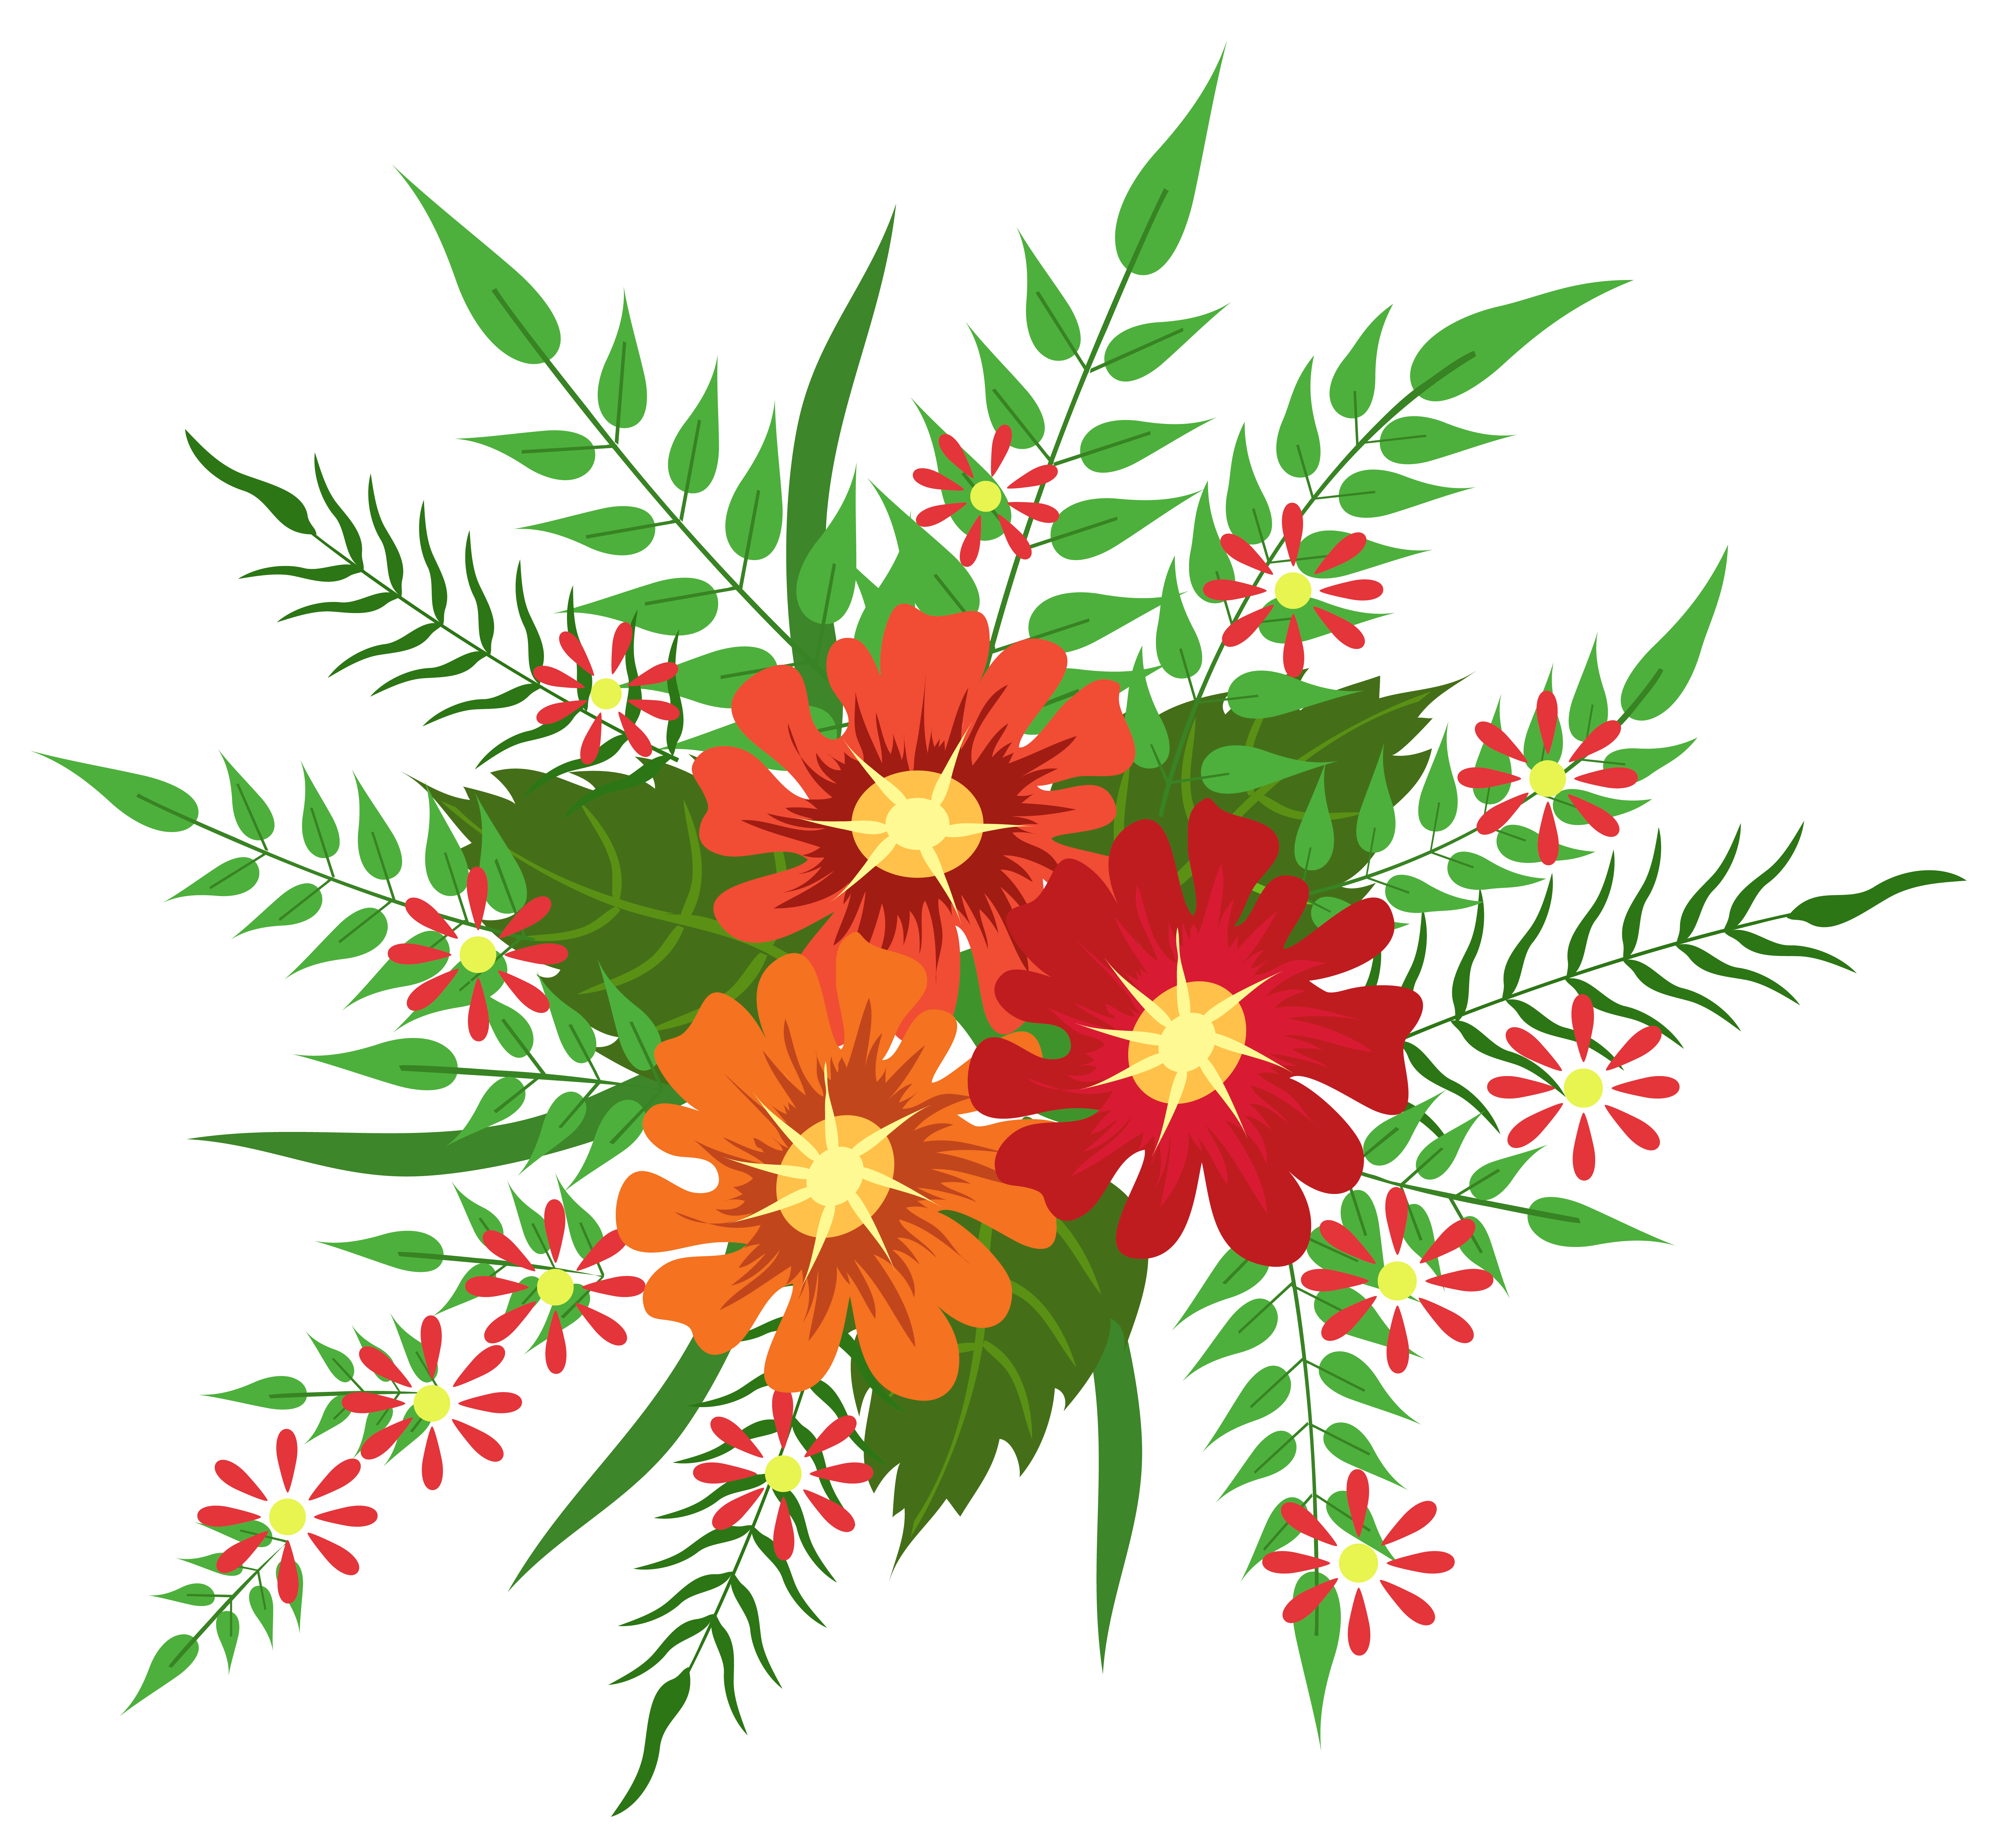 Orange Flower clipart flower decoration Image Red Flowers Flowers free